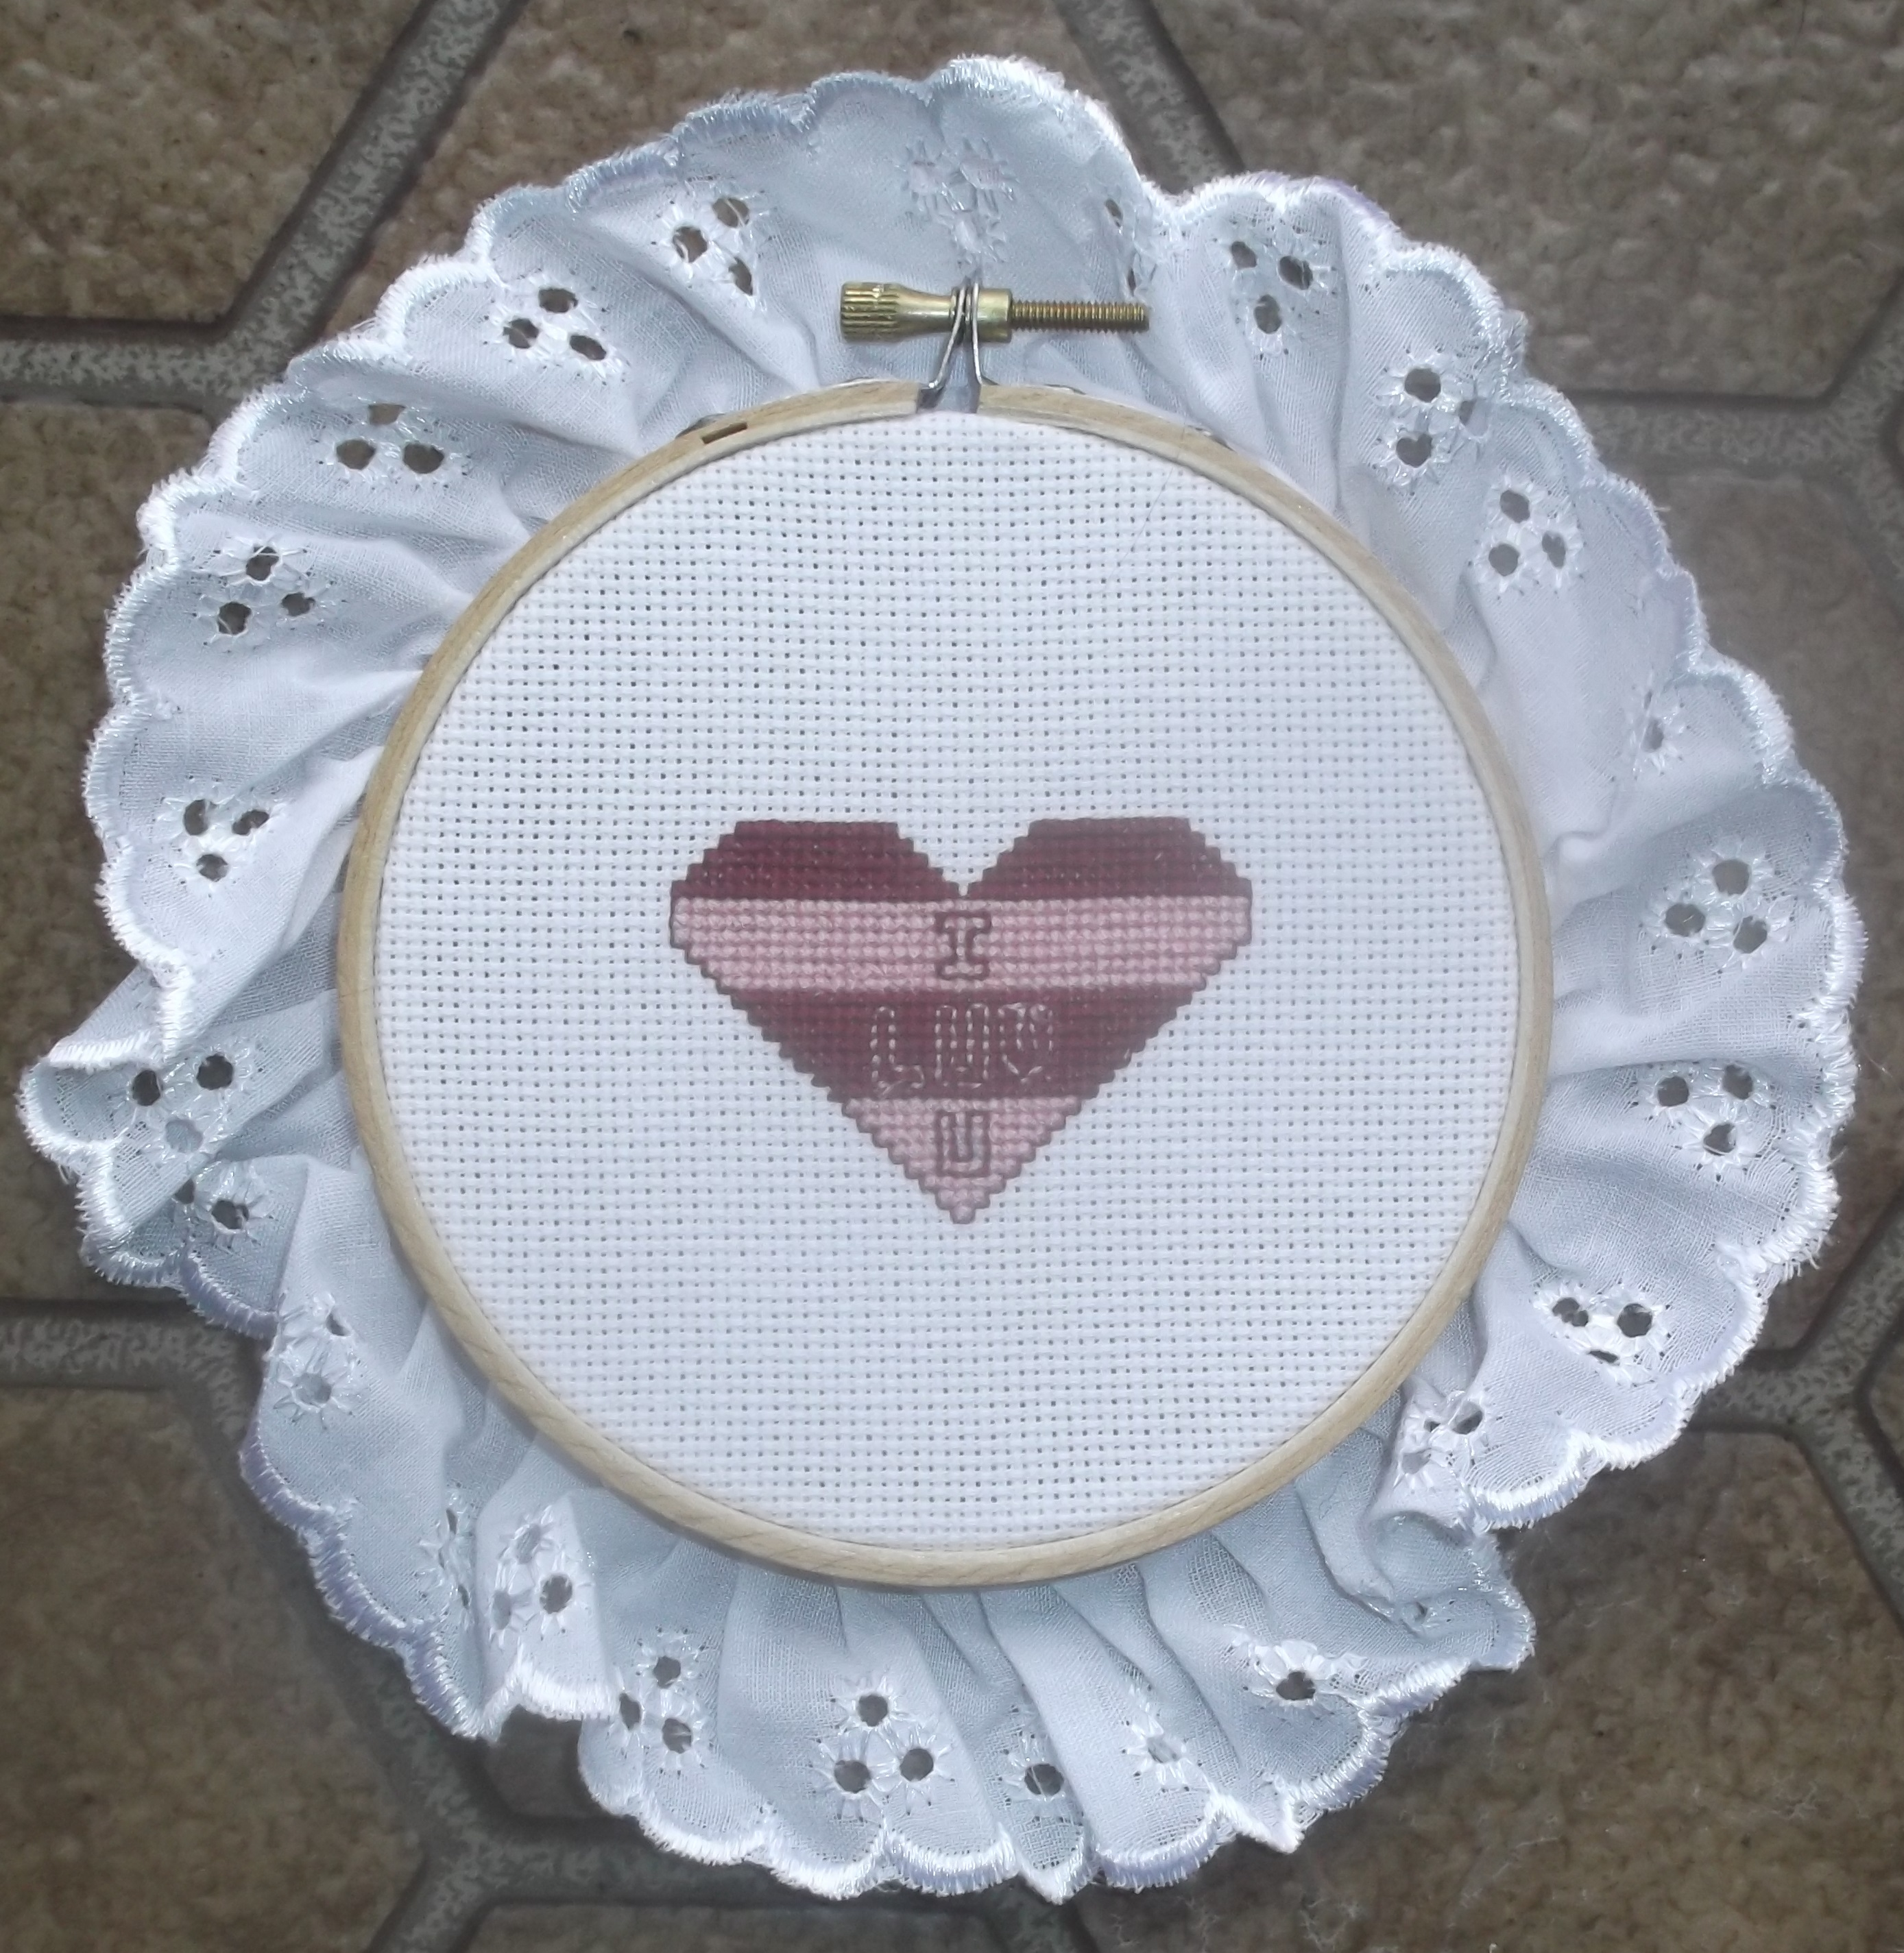 Photo I took of the latest cross stitch that I have put into my shop.